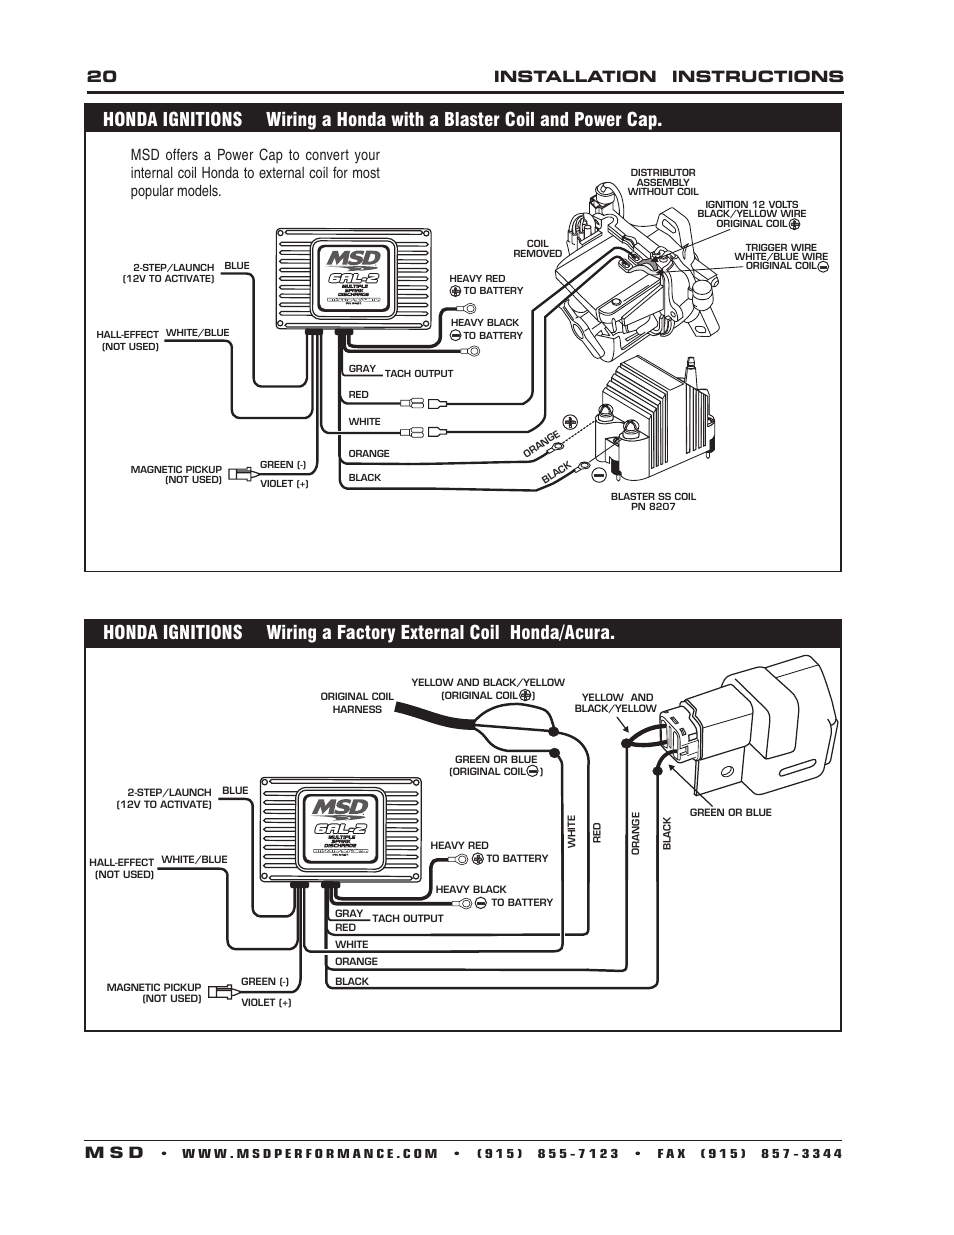 6al Msd Ignition Wiring Diagram 6421 2 Electrical Diagrams Schematics Gm Distributor